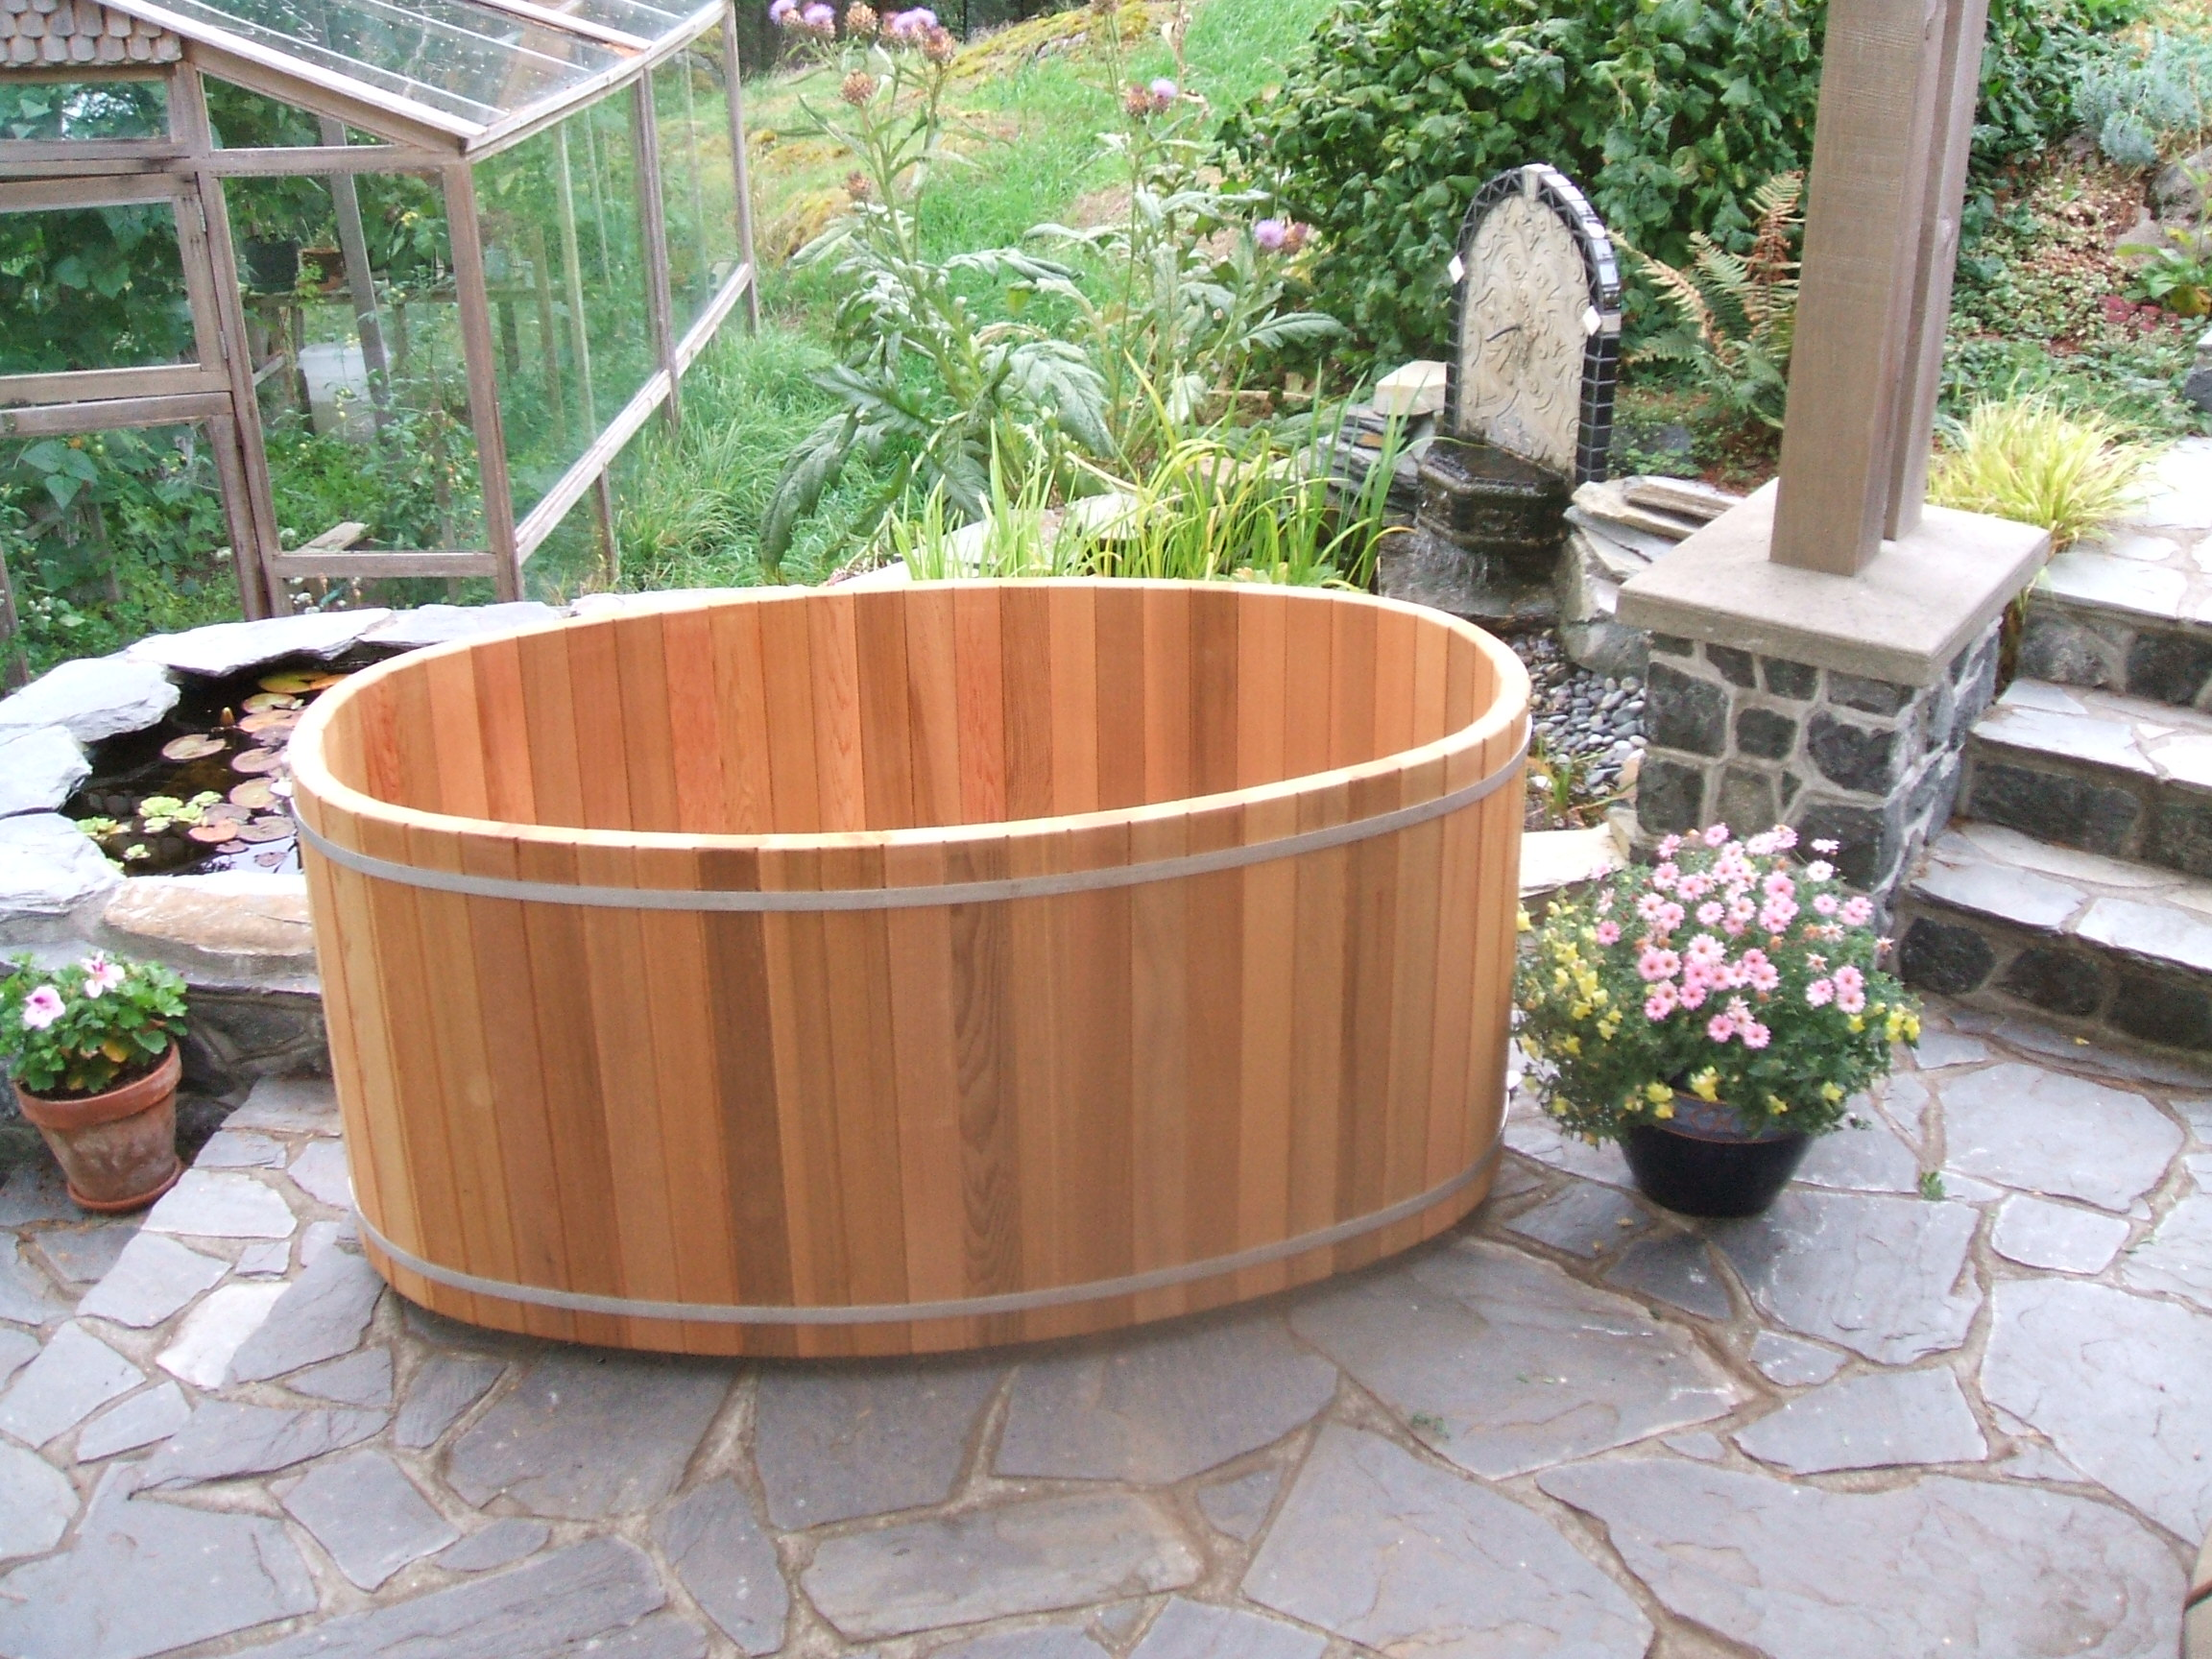 for outdoor by barrel projects hot tubs sauna saunas panoramic timberin homify wooden in wall half tub sale window rear with